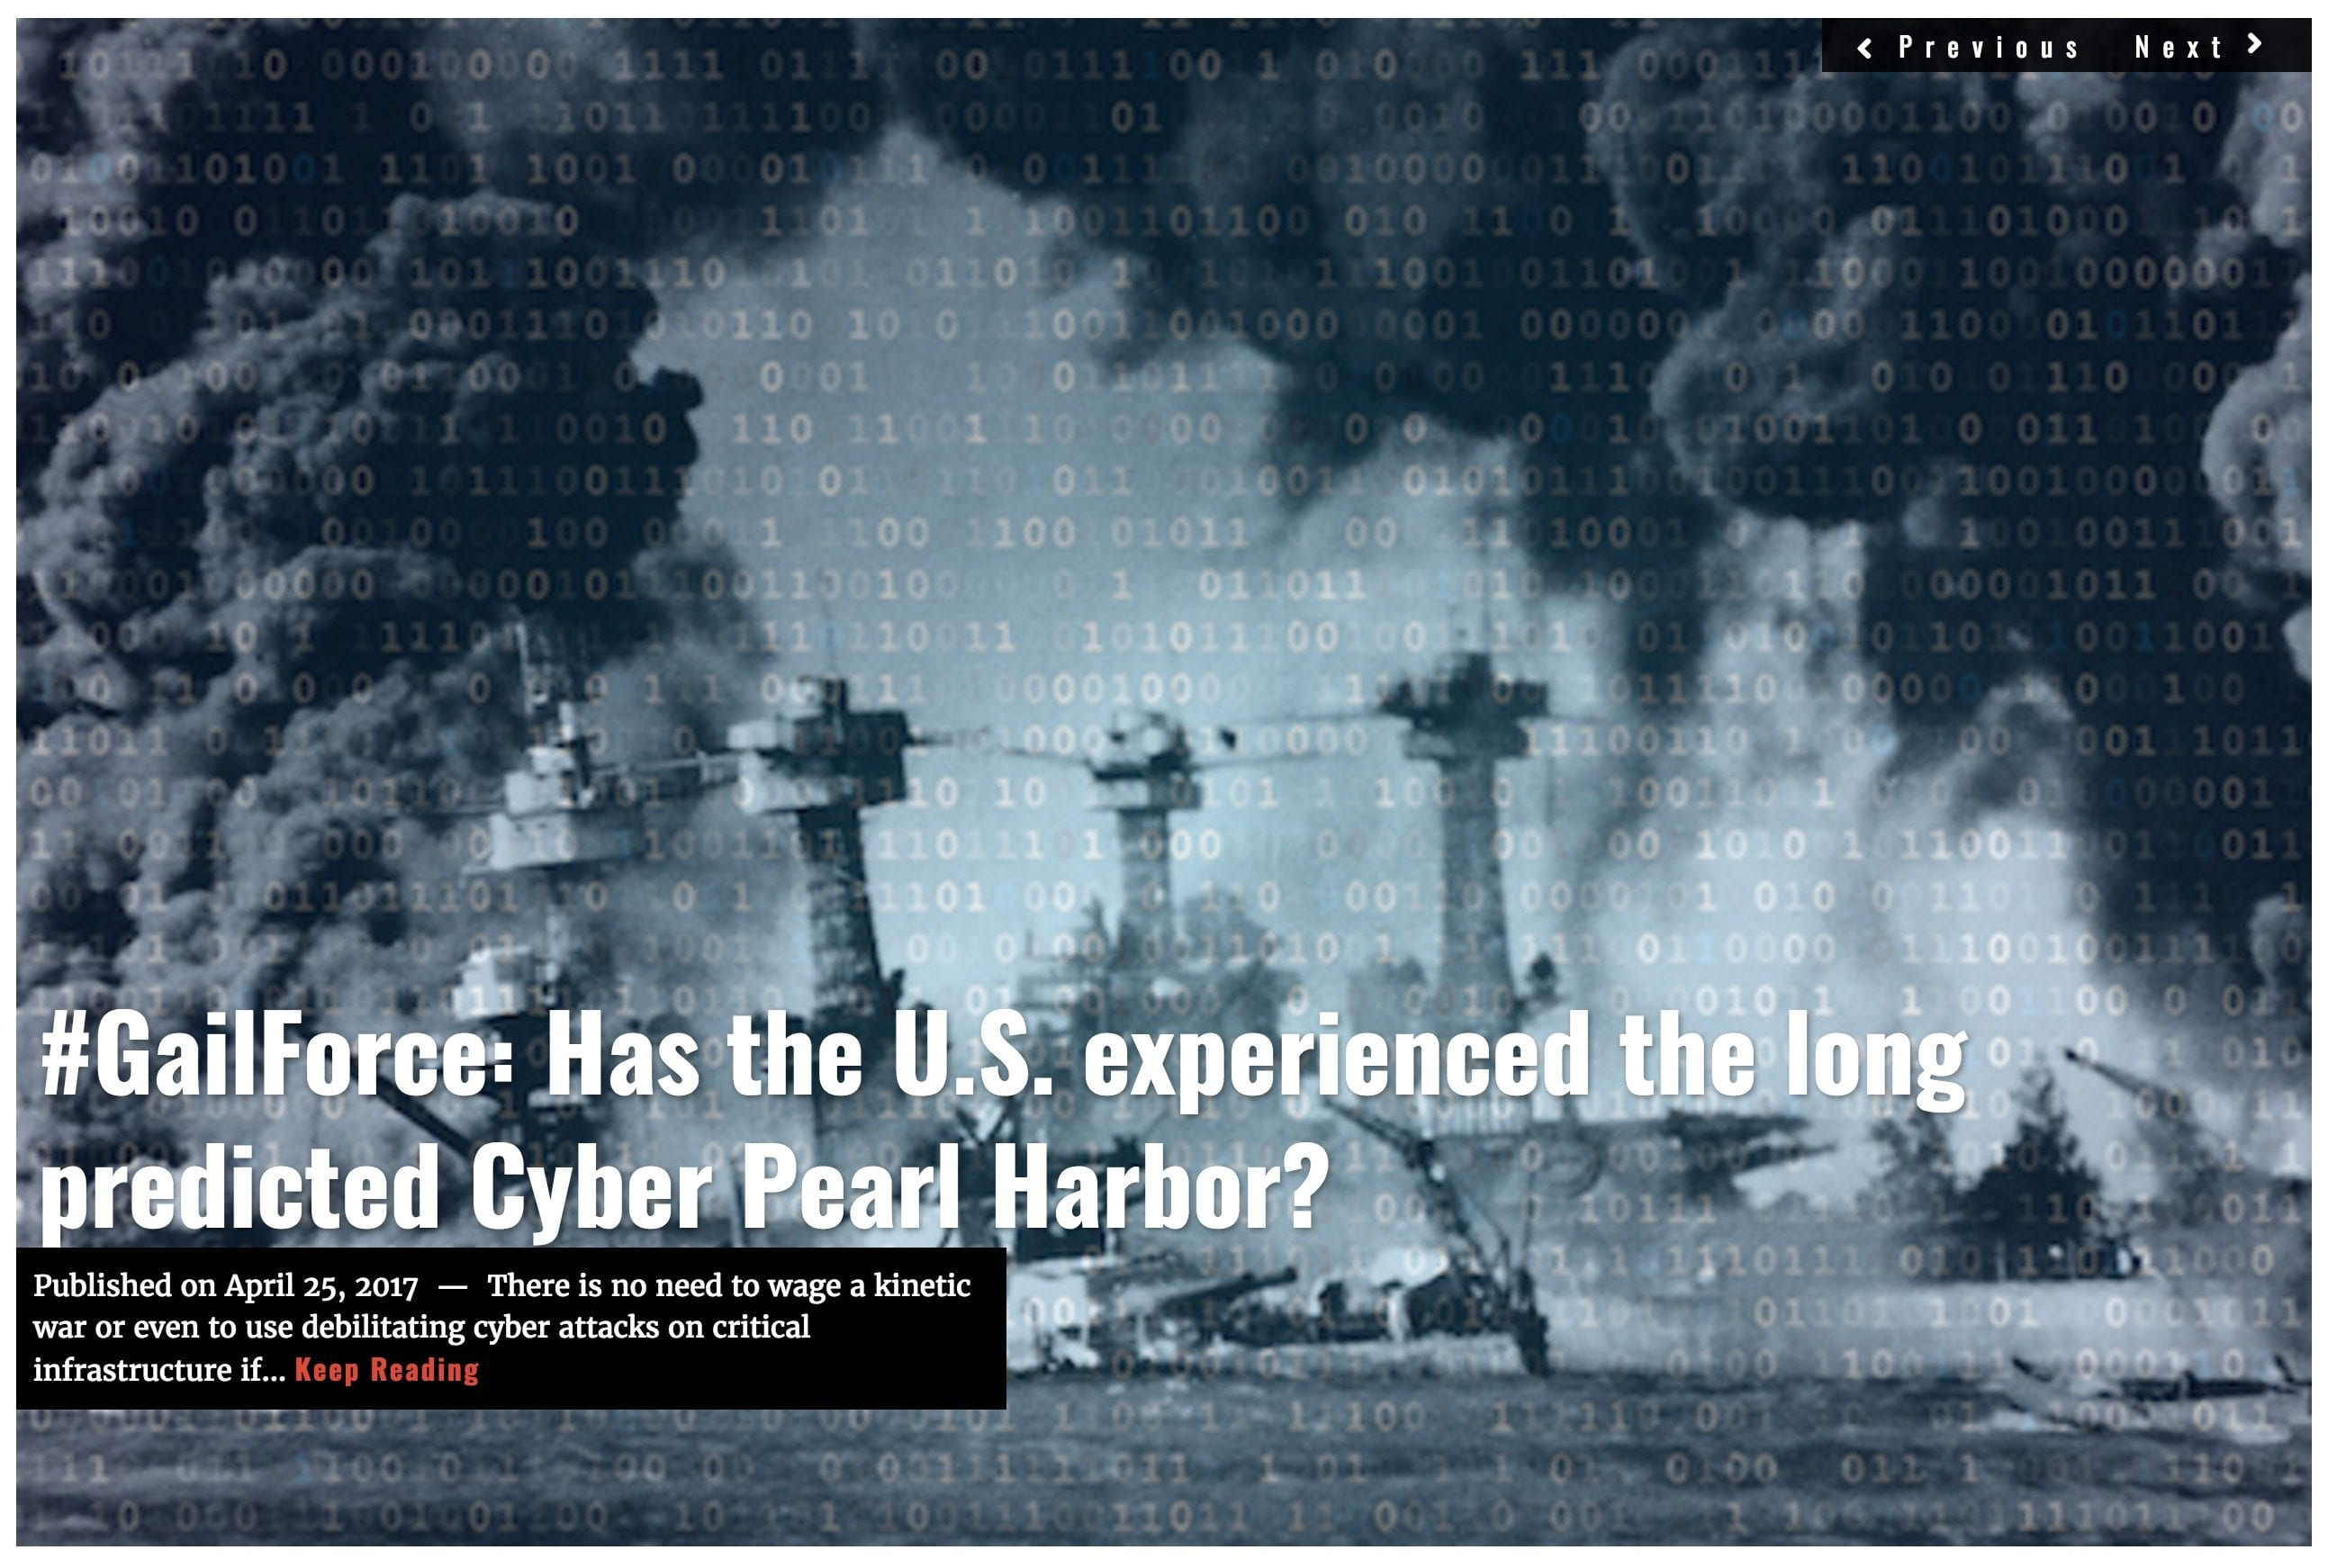 Image Lima Charlie News Headline Cyber Pearl Harbor G.Harris APR25